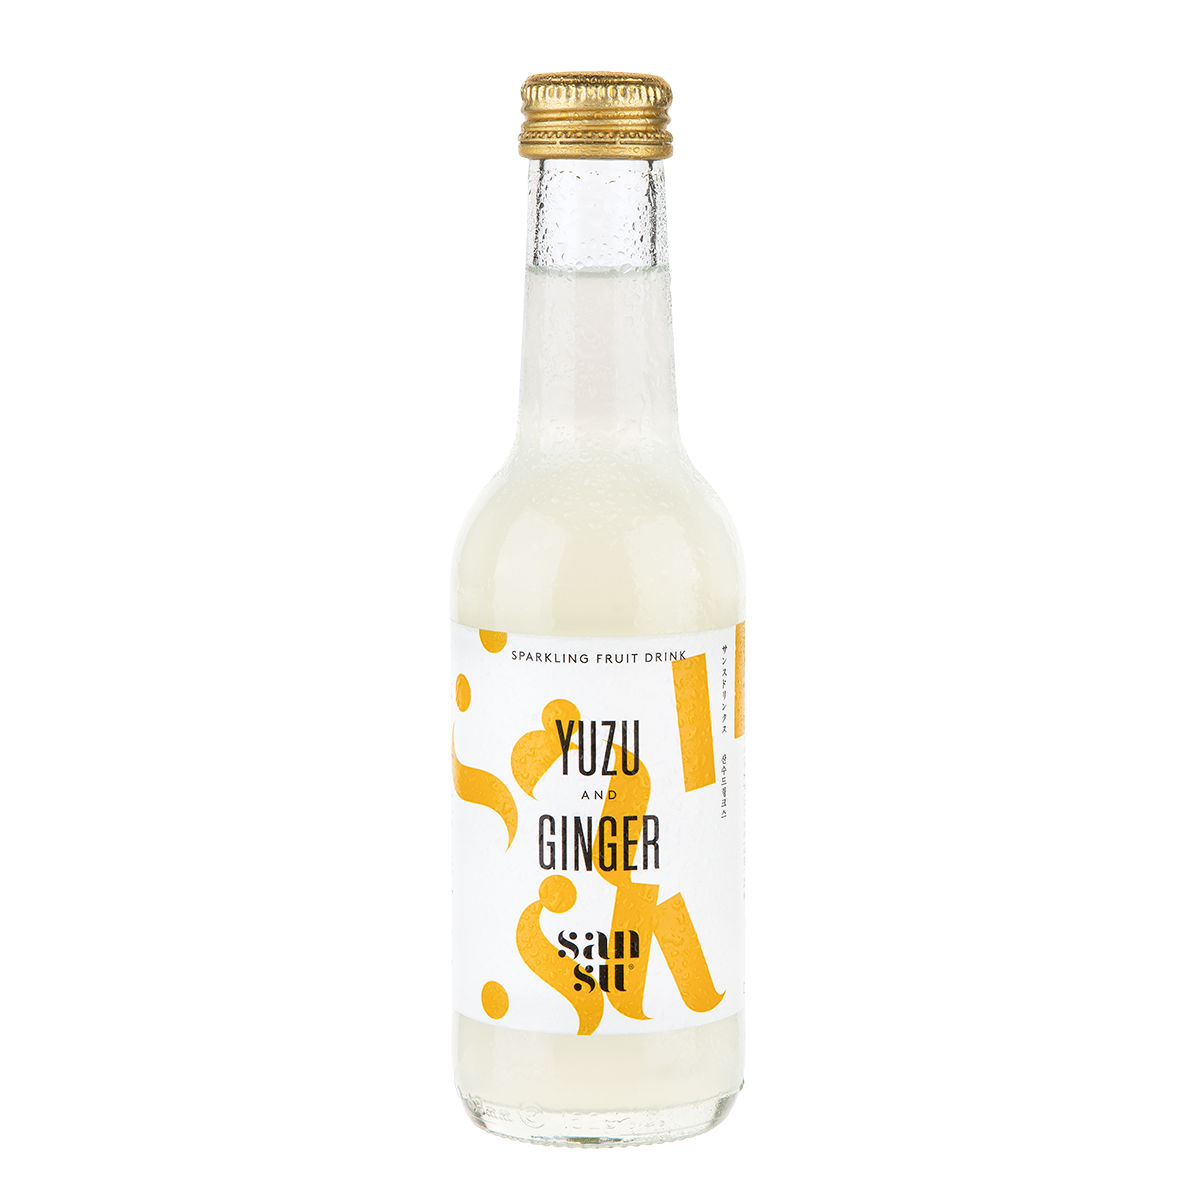 yuzu and ginger sparkling drink